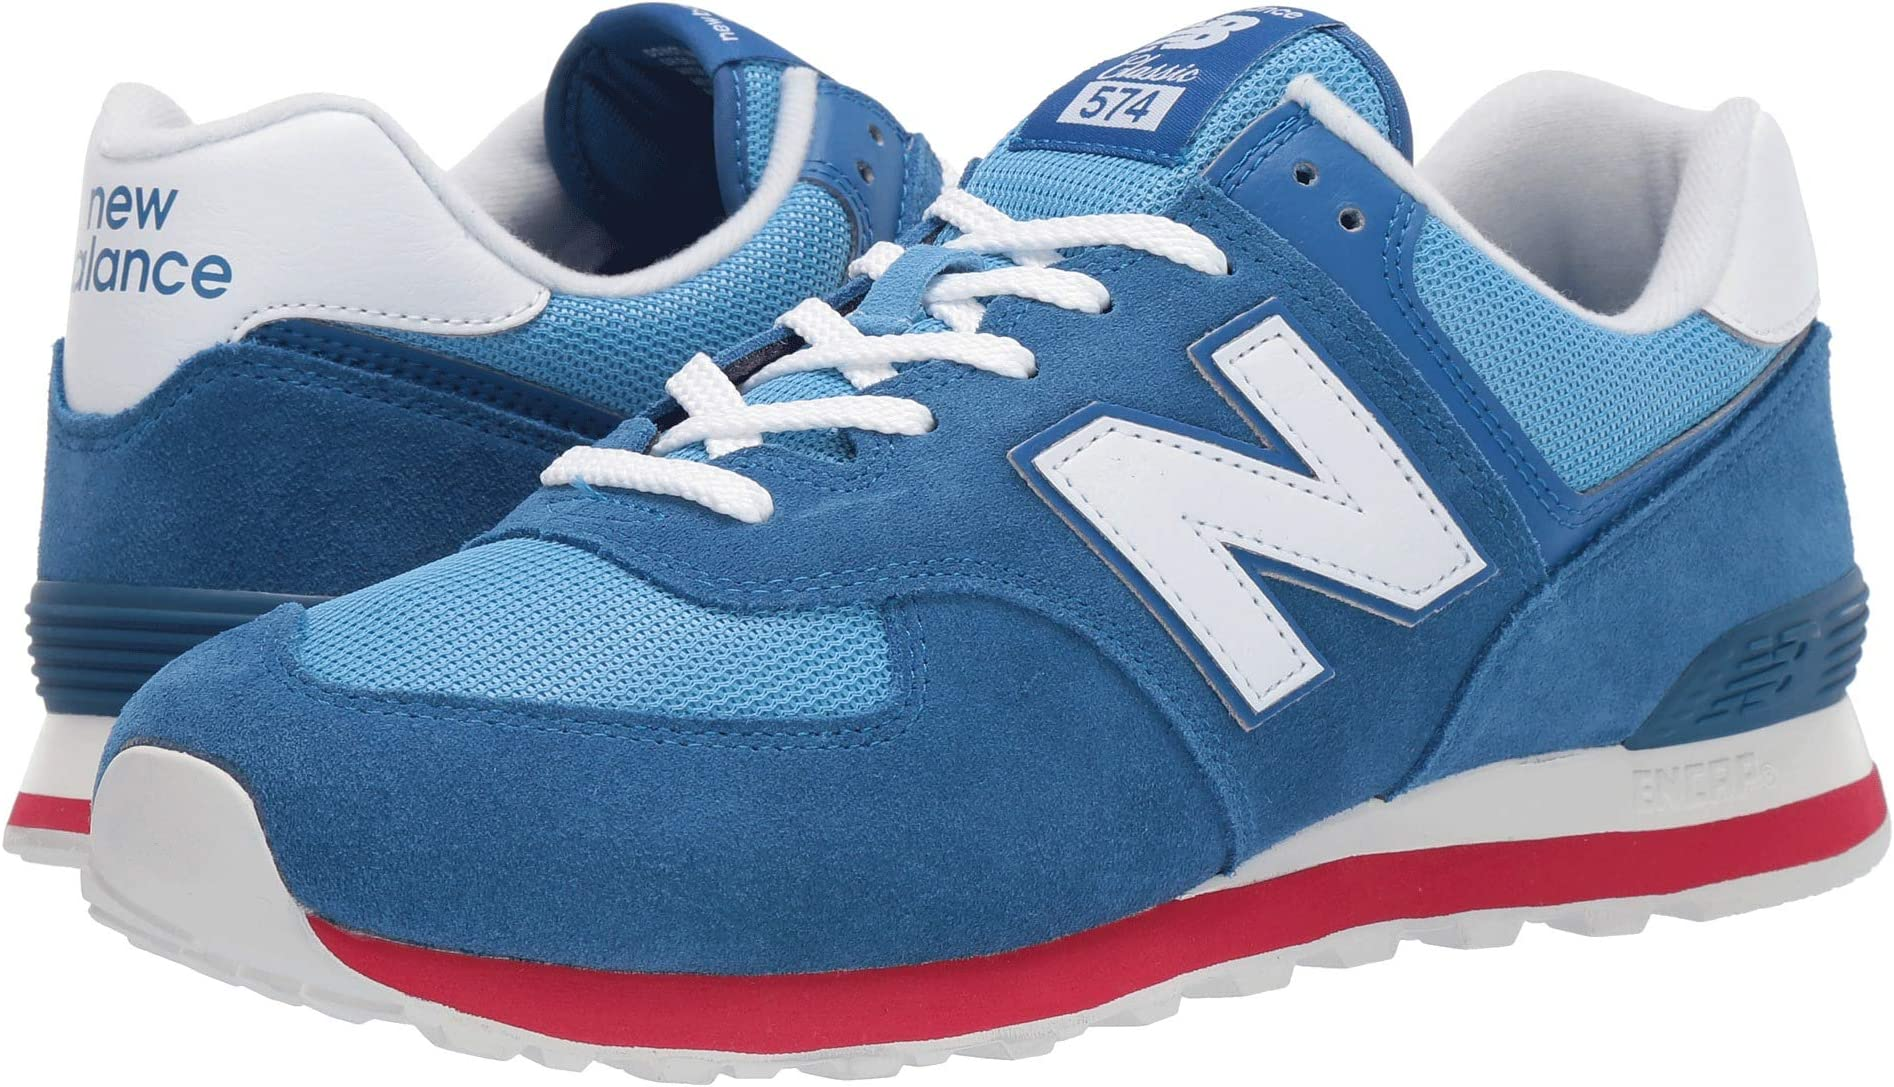 6c85b90428 New Balance Shoes, Clothing, Activewear, Socks | Zappos.com